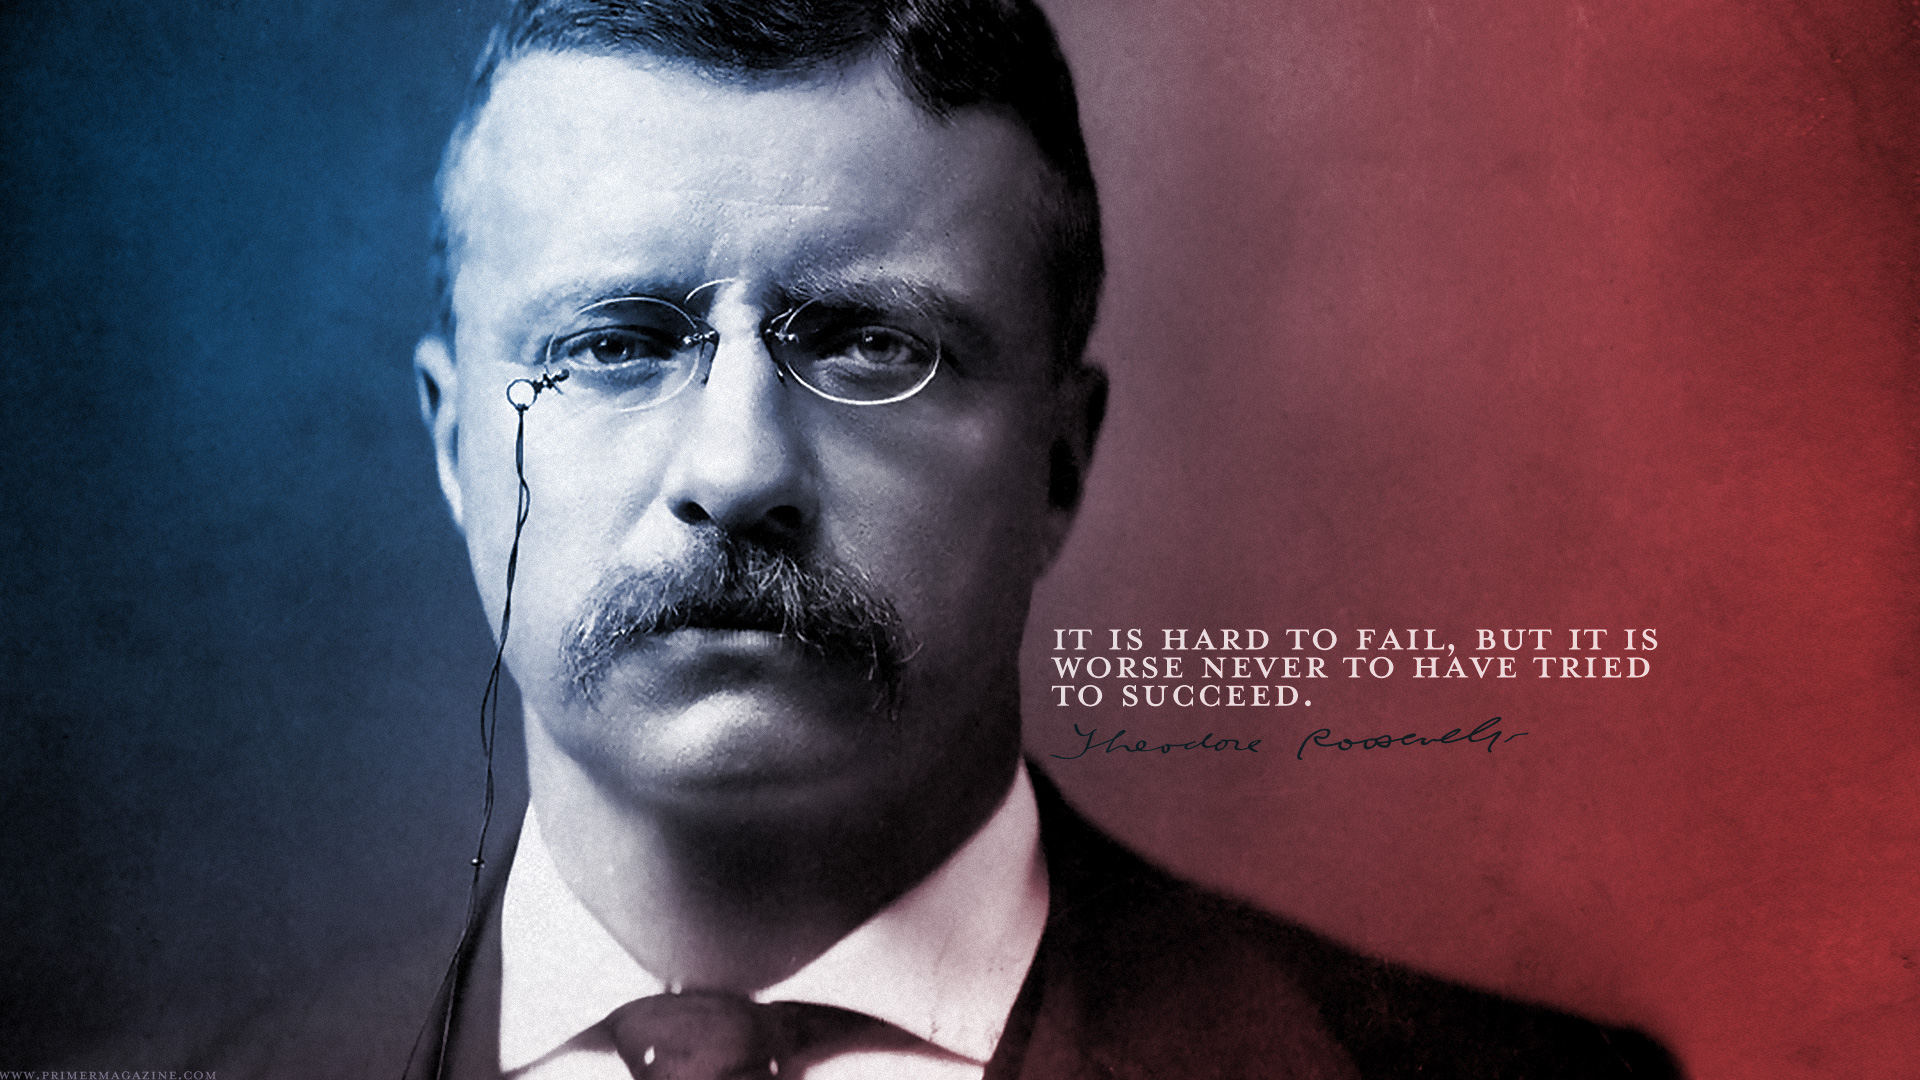 wednesday wallpaper: failure vs success by teddy roosevelt | primer